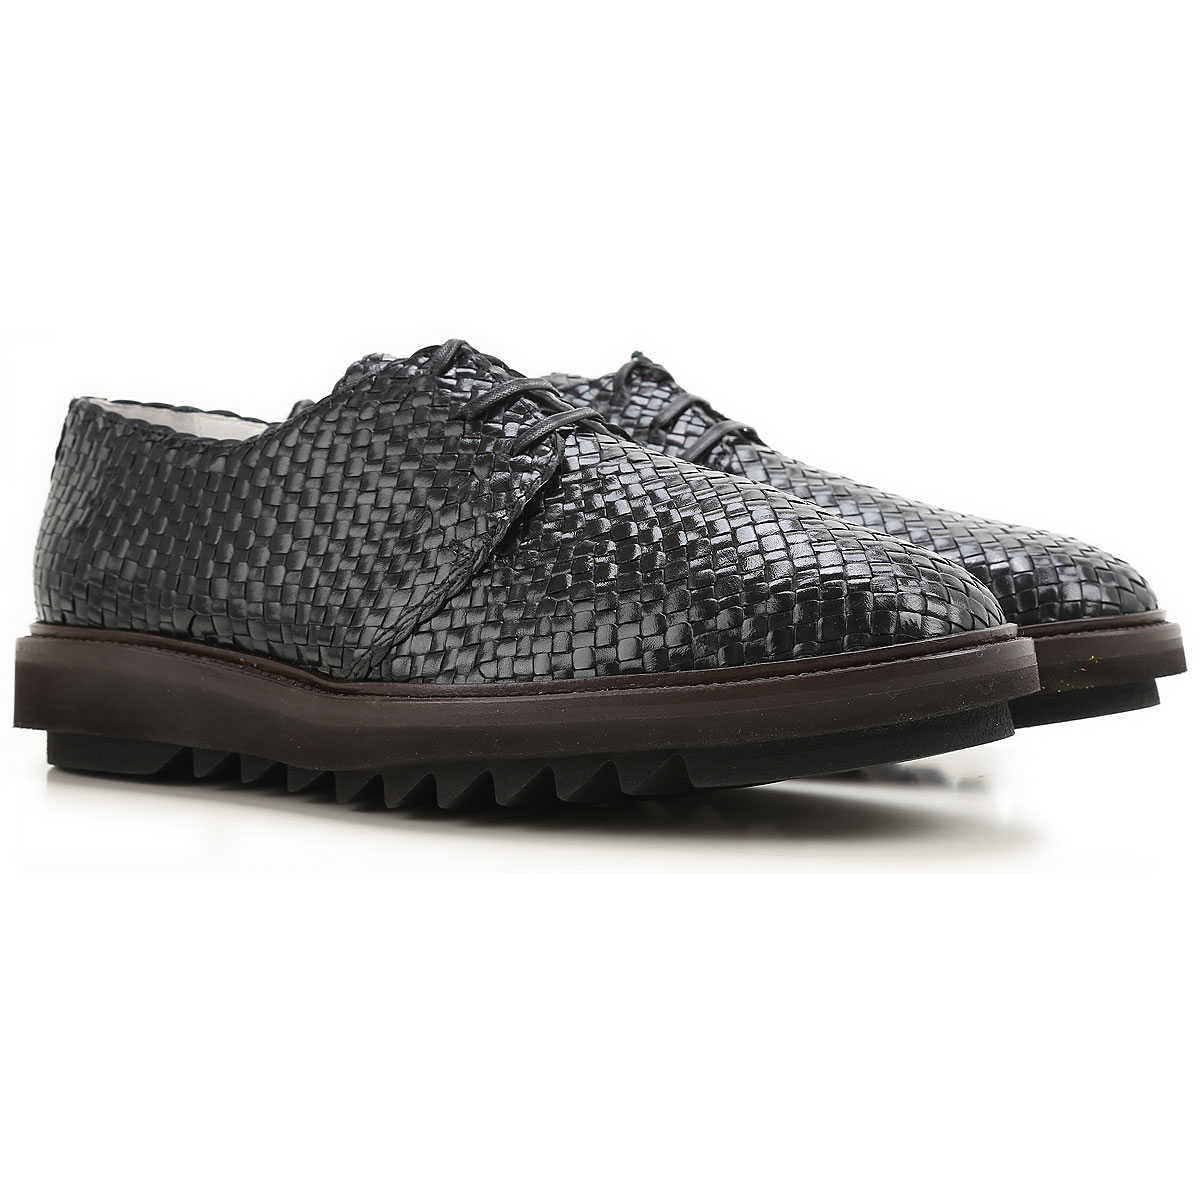 Dolce & Gabbana Lace Up Shoes for Men Oxfords 5.5 6.5 7 7.5 8 8.5 9.5 Derbies and Brogues On Sale UK - GOOFASH